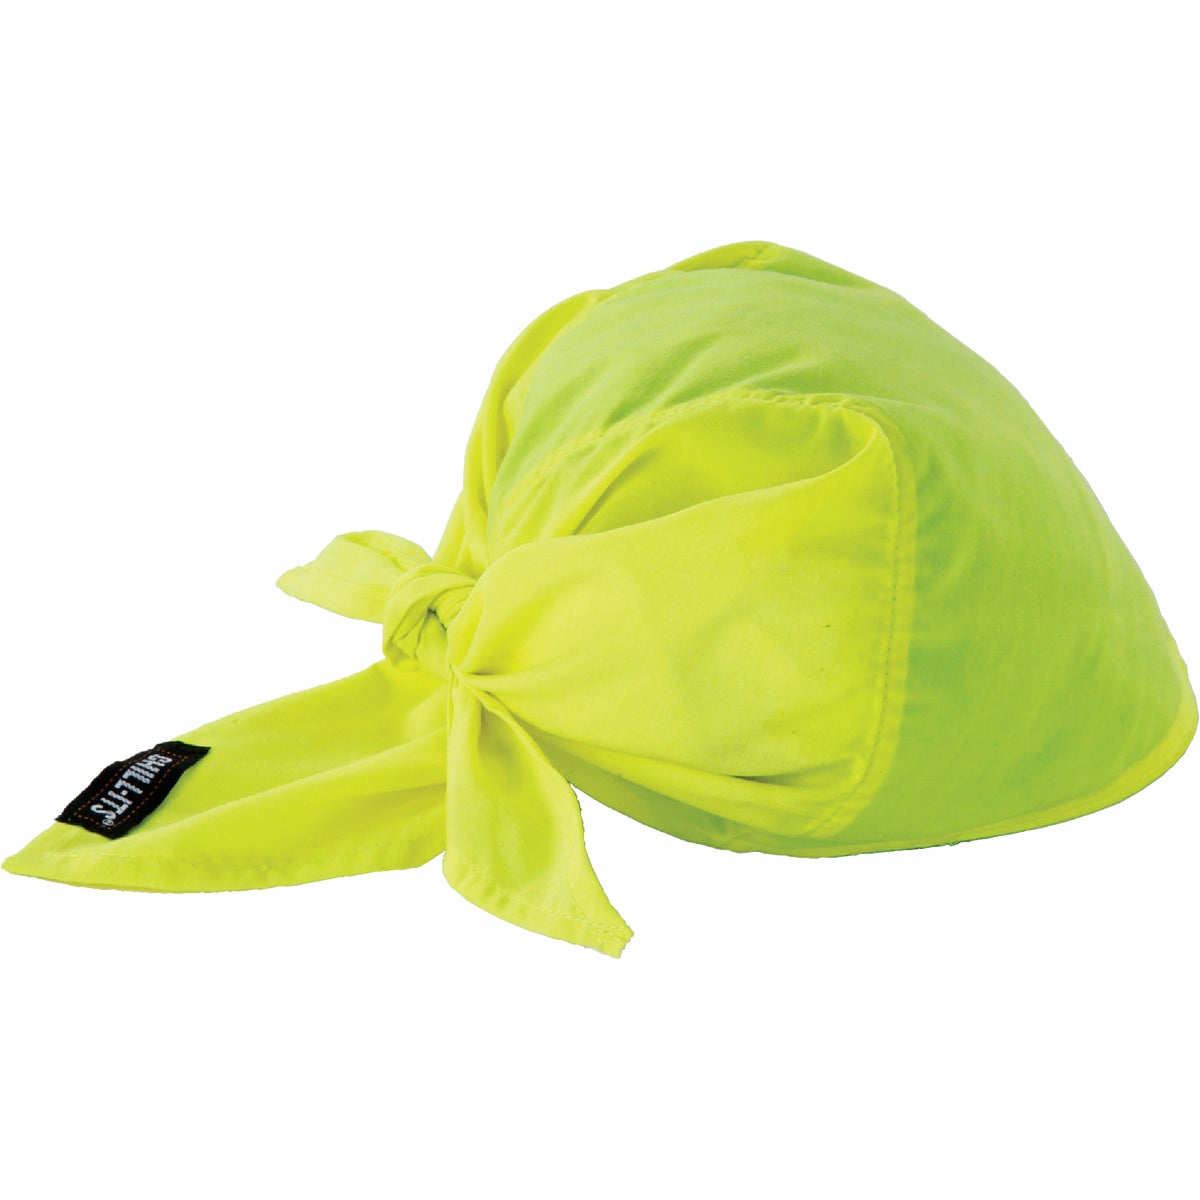 LIME COOL TRIANGLE HAT - 12586 by Ergodyne Incom